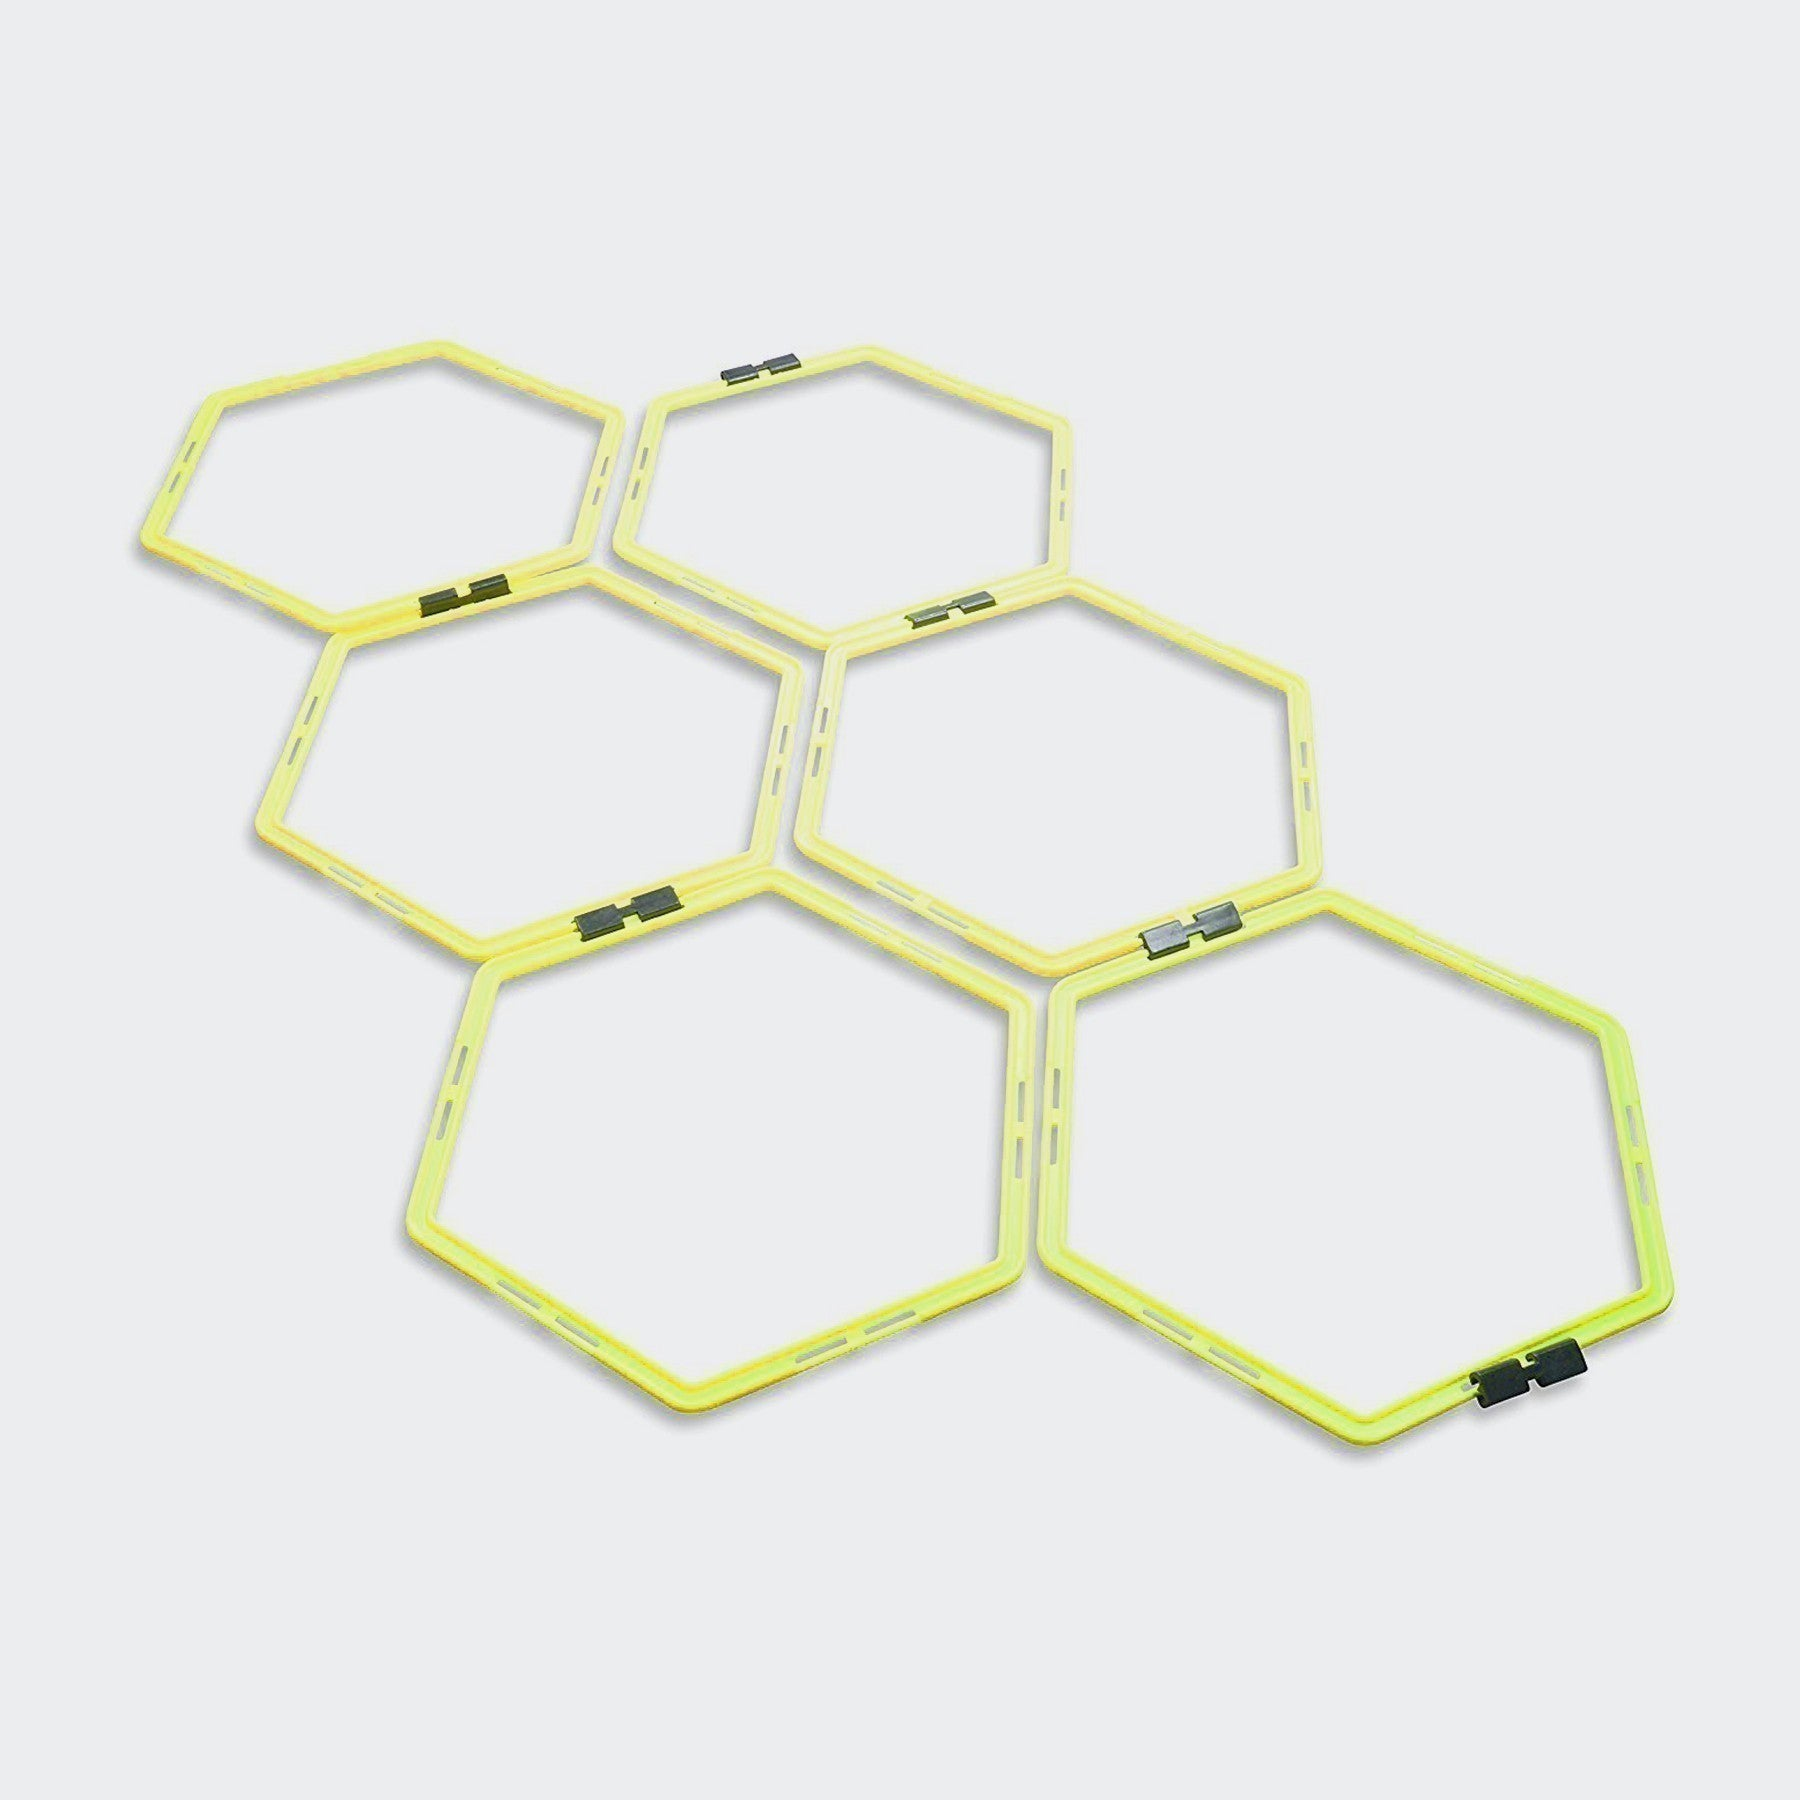 Hexagonal Agility Rings